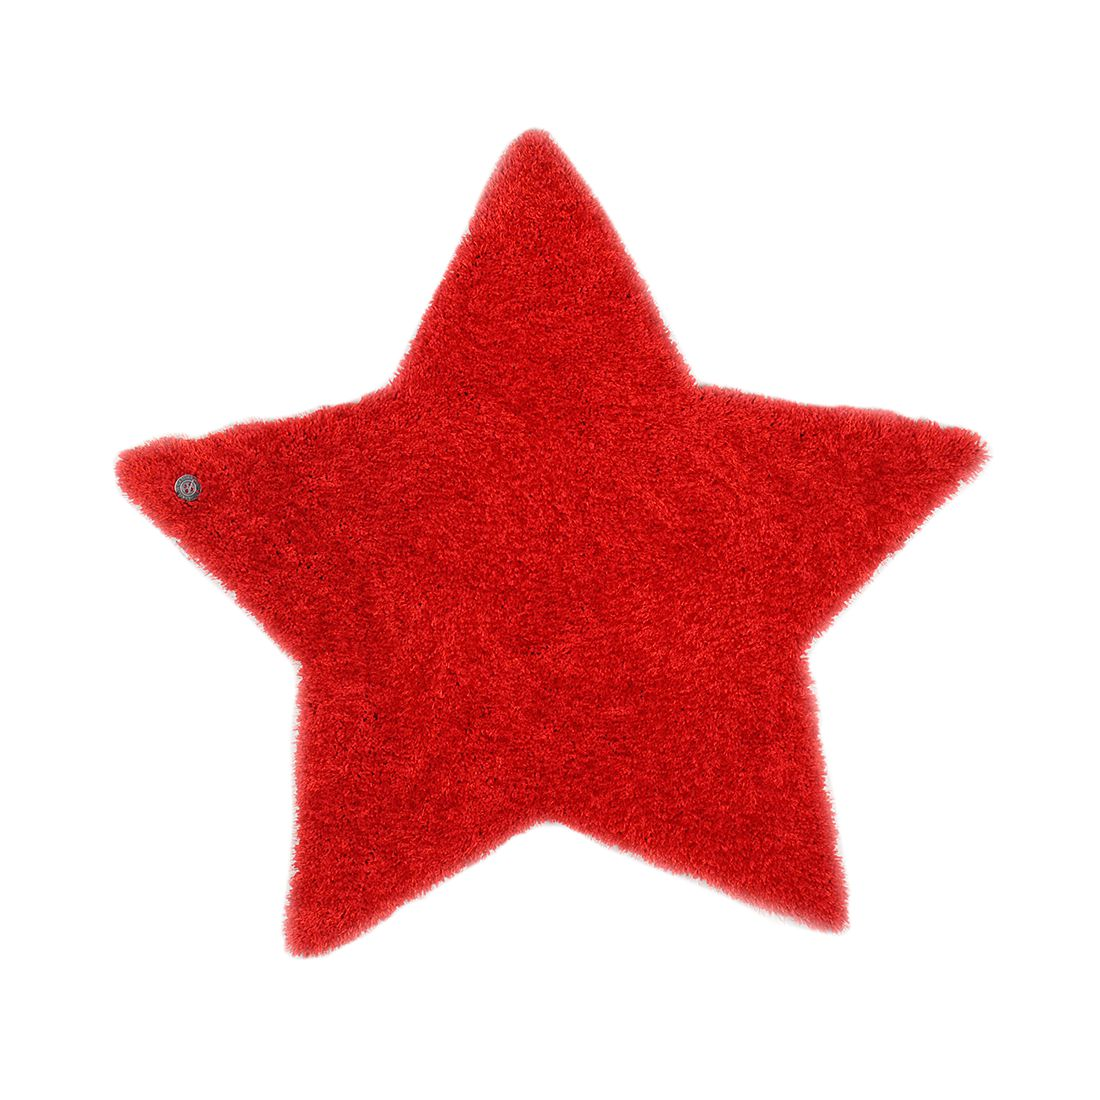 Home 24 - Tapis soft star - rouge - 100 x 100 cm, tom tailor